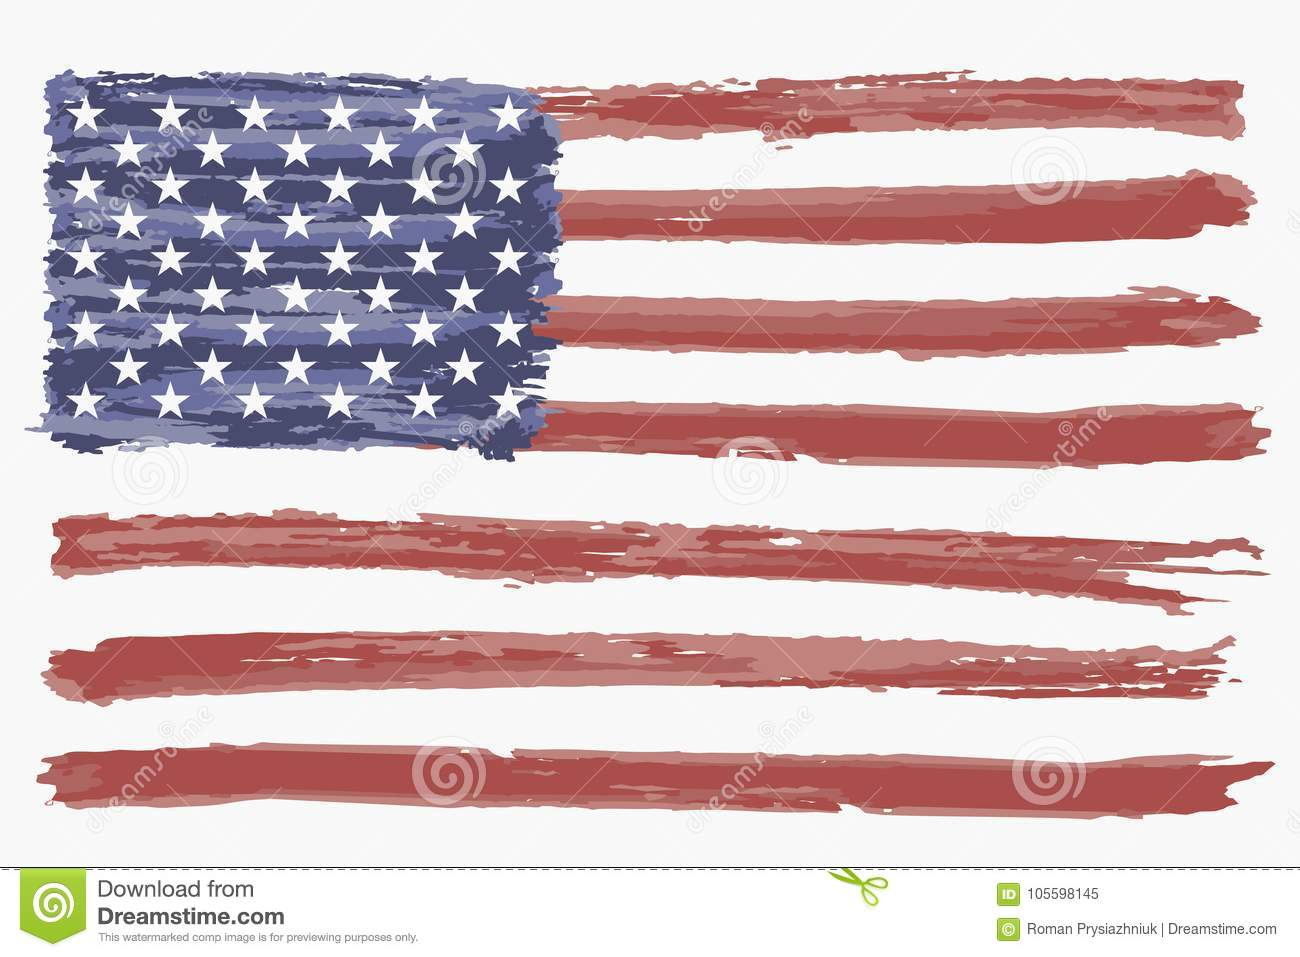 Watercolor flag of USA. American grunge flag, background. Vector.